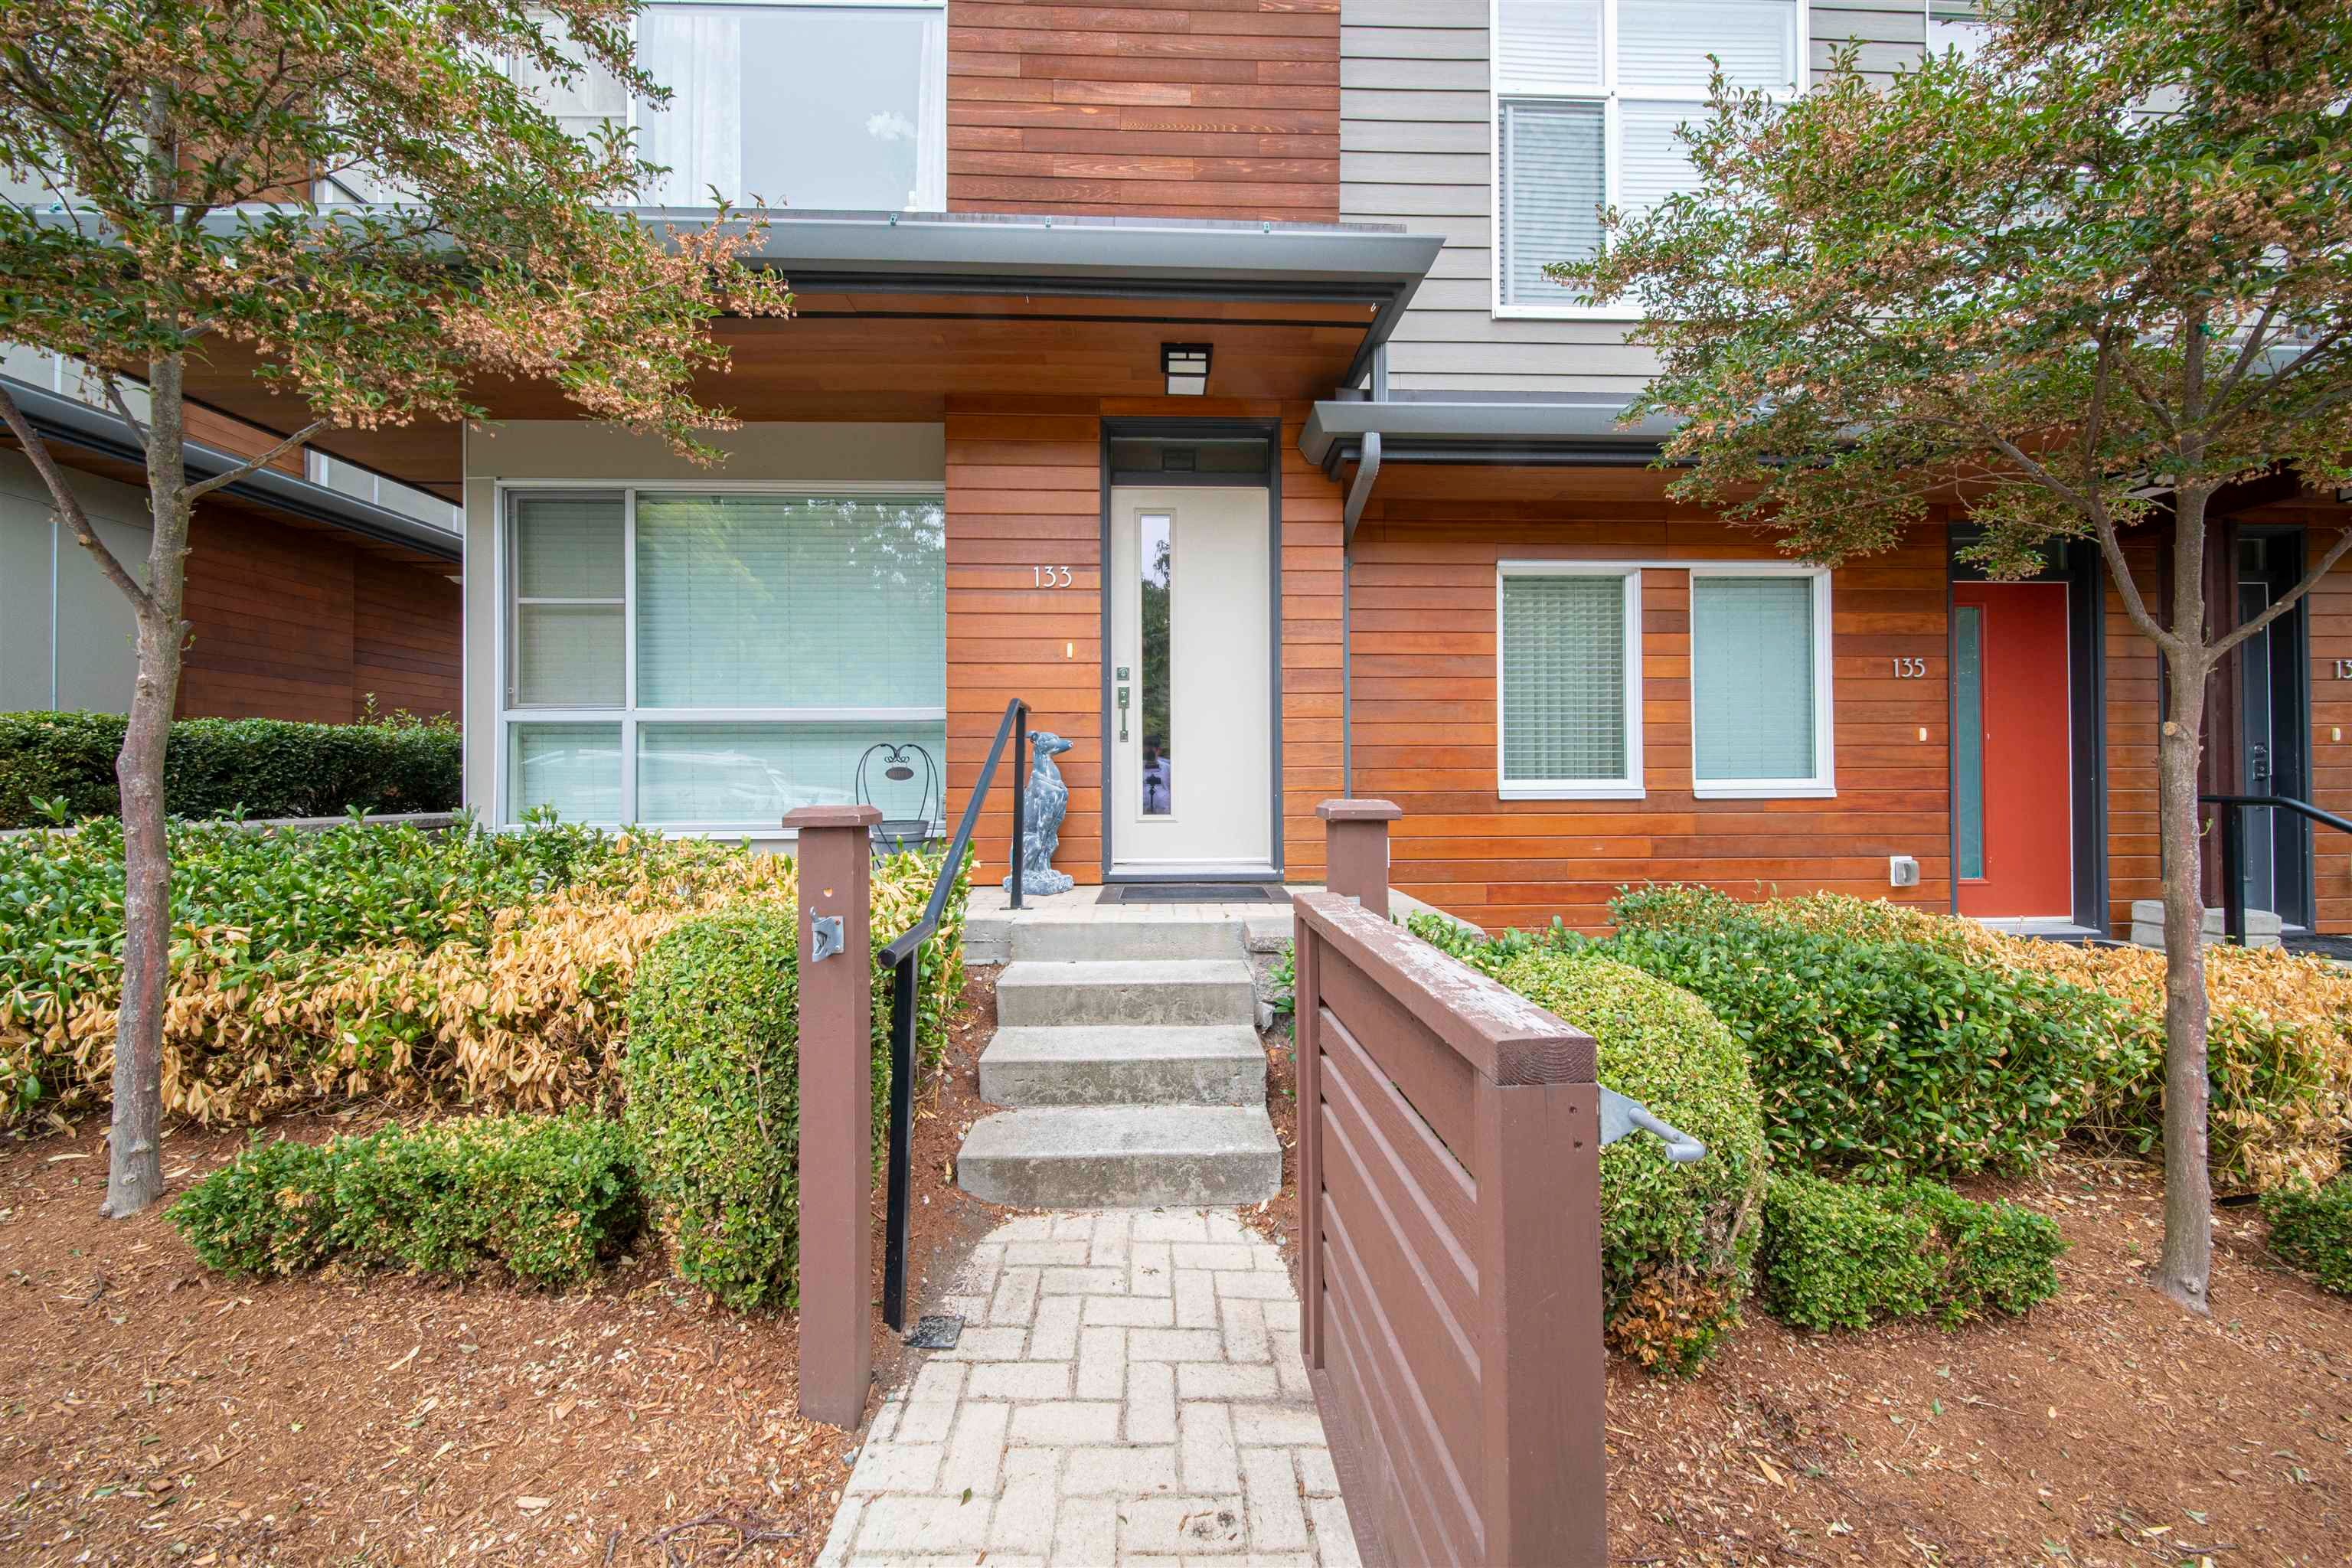 Main Photo: 133 2228 162 STREET in Surrey: Grandview Surrey Townhouse for sale (South Surrey White Rock)  : MLS®# R2611698